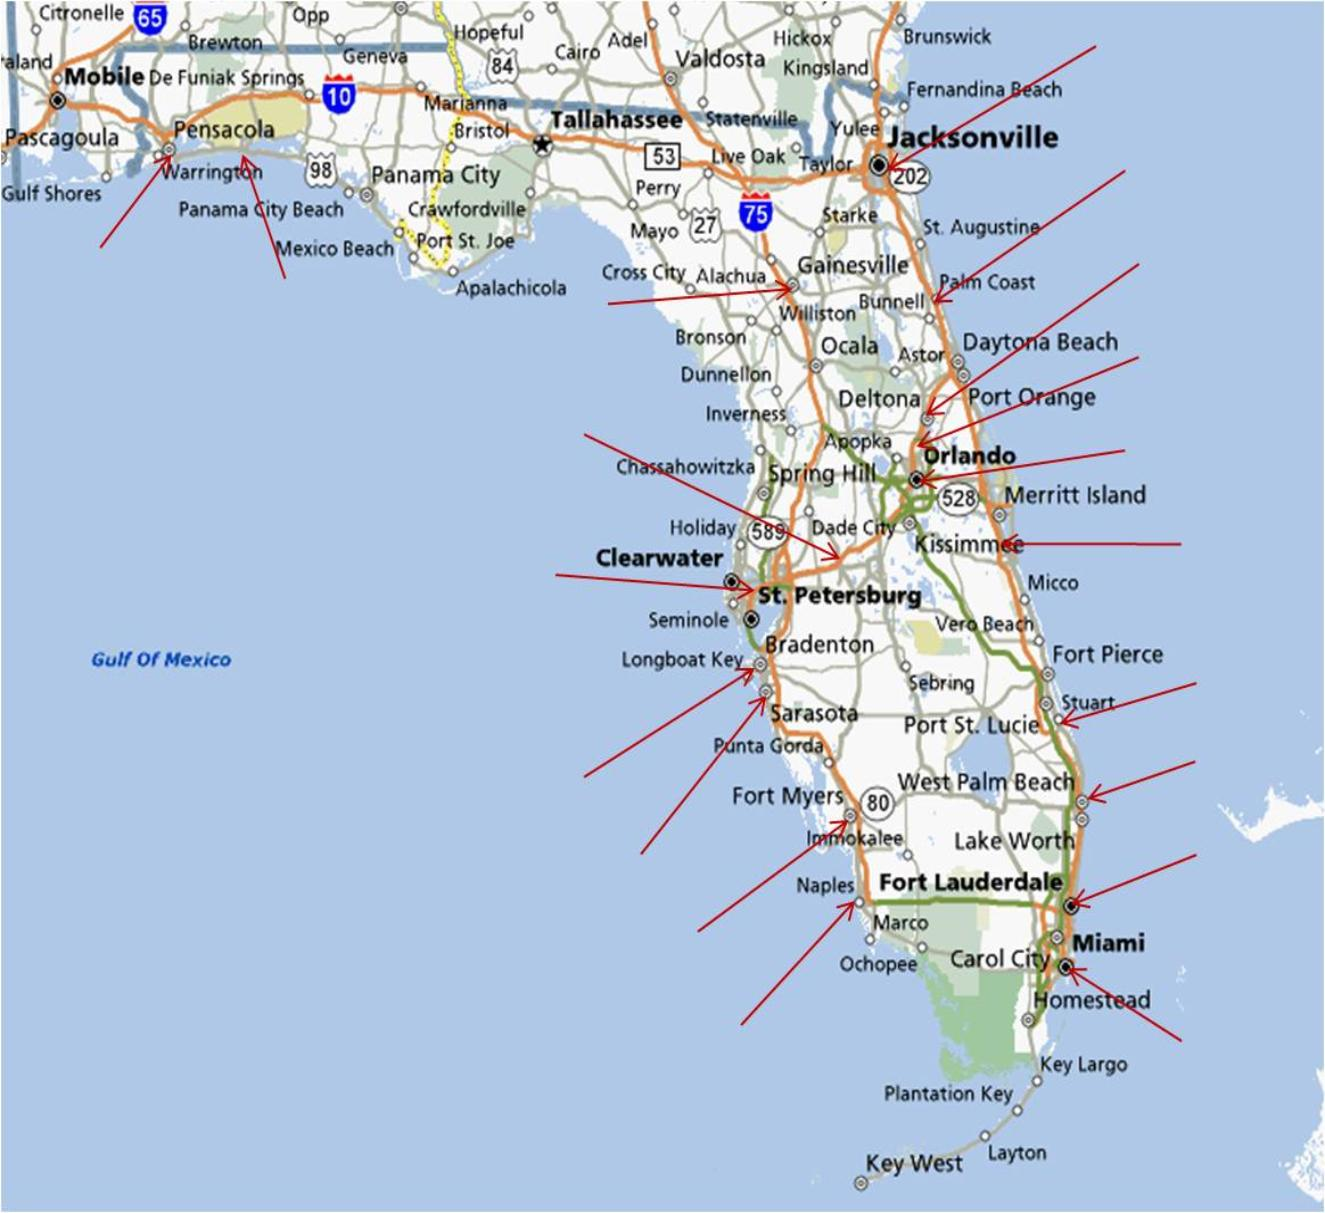 fl east coast map world map 07 ForMap Of East Coast Of Florida